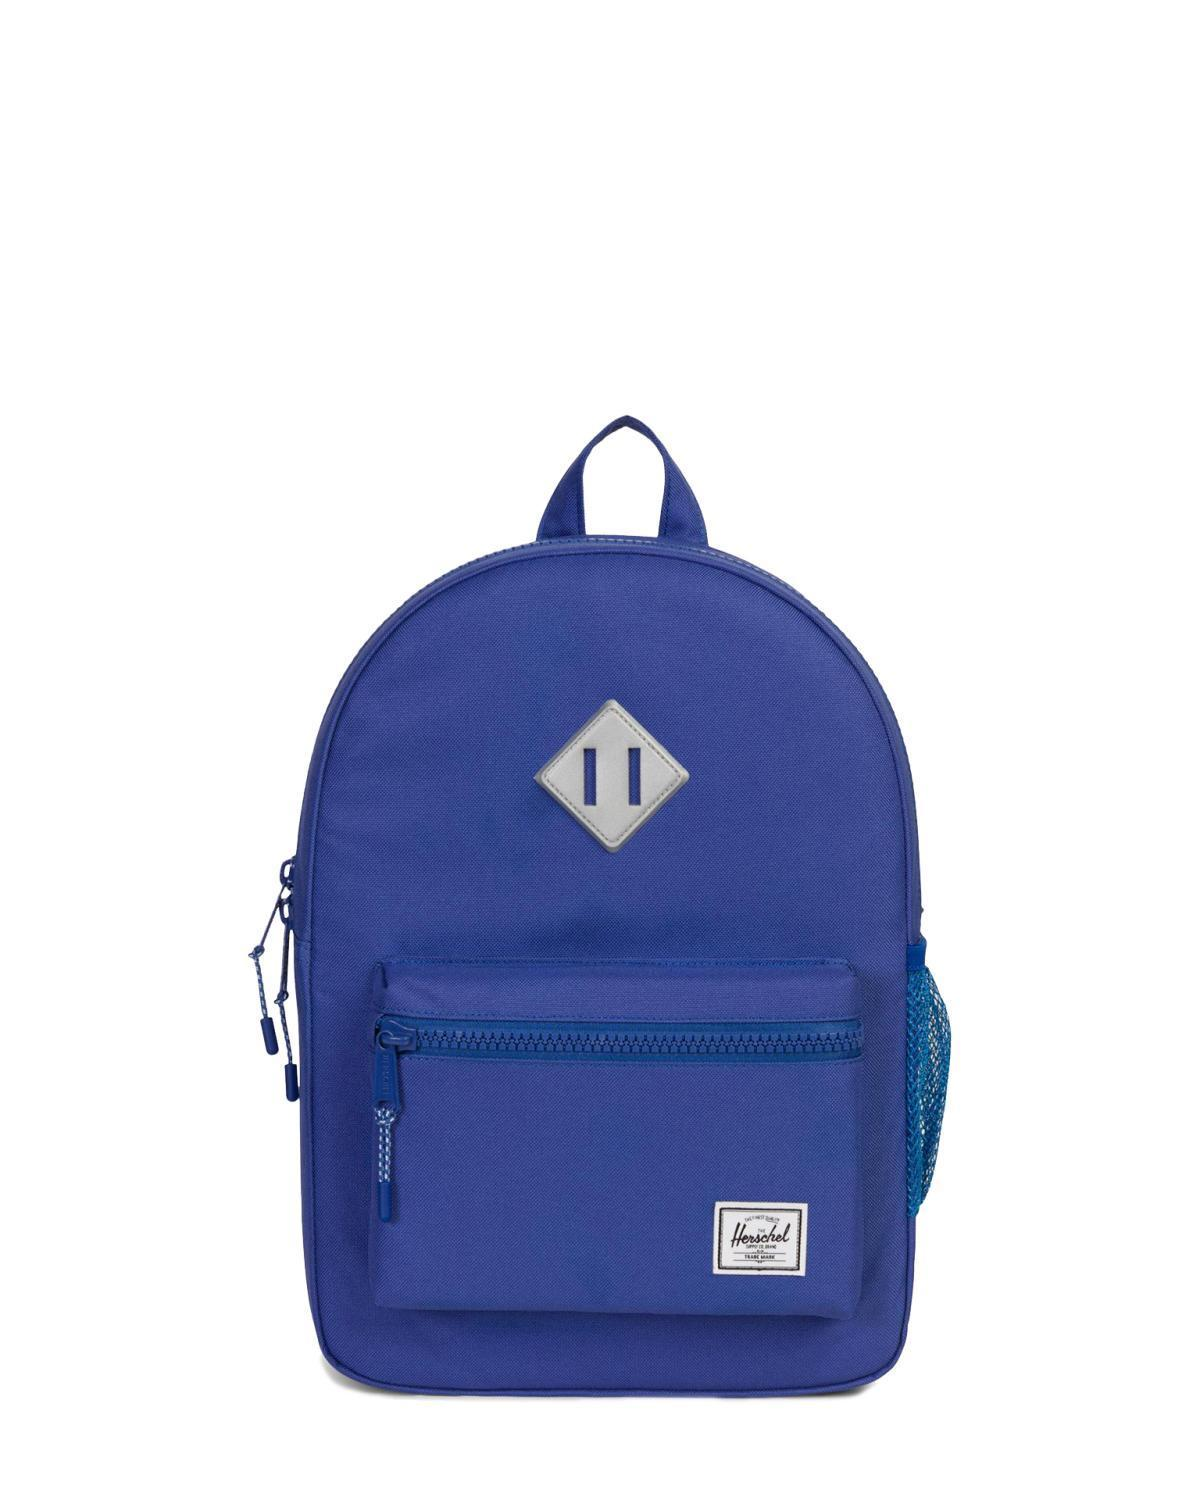 Little herschel supply co accessories youth heritage backpack in deep ultramarine